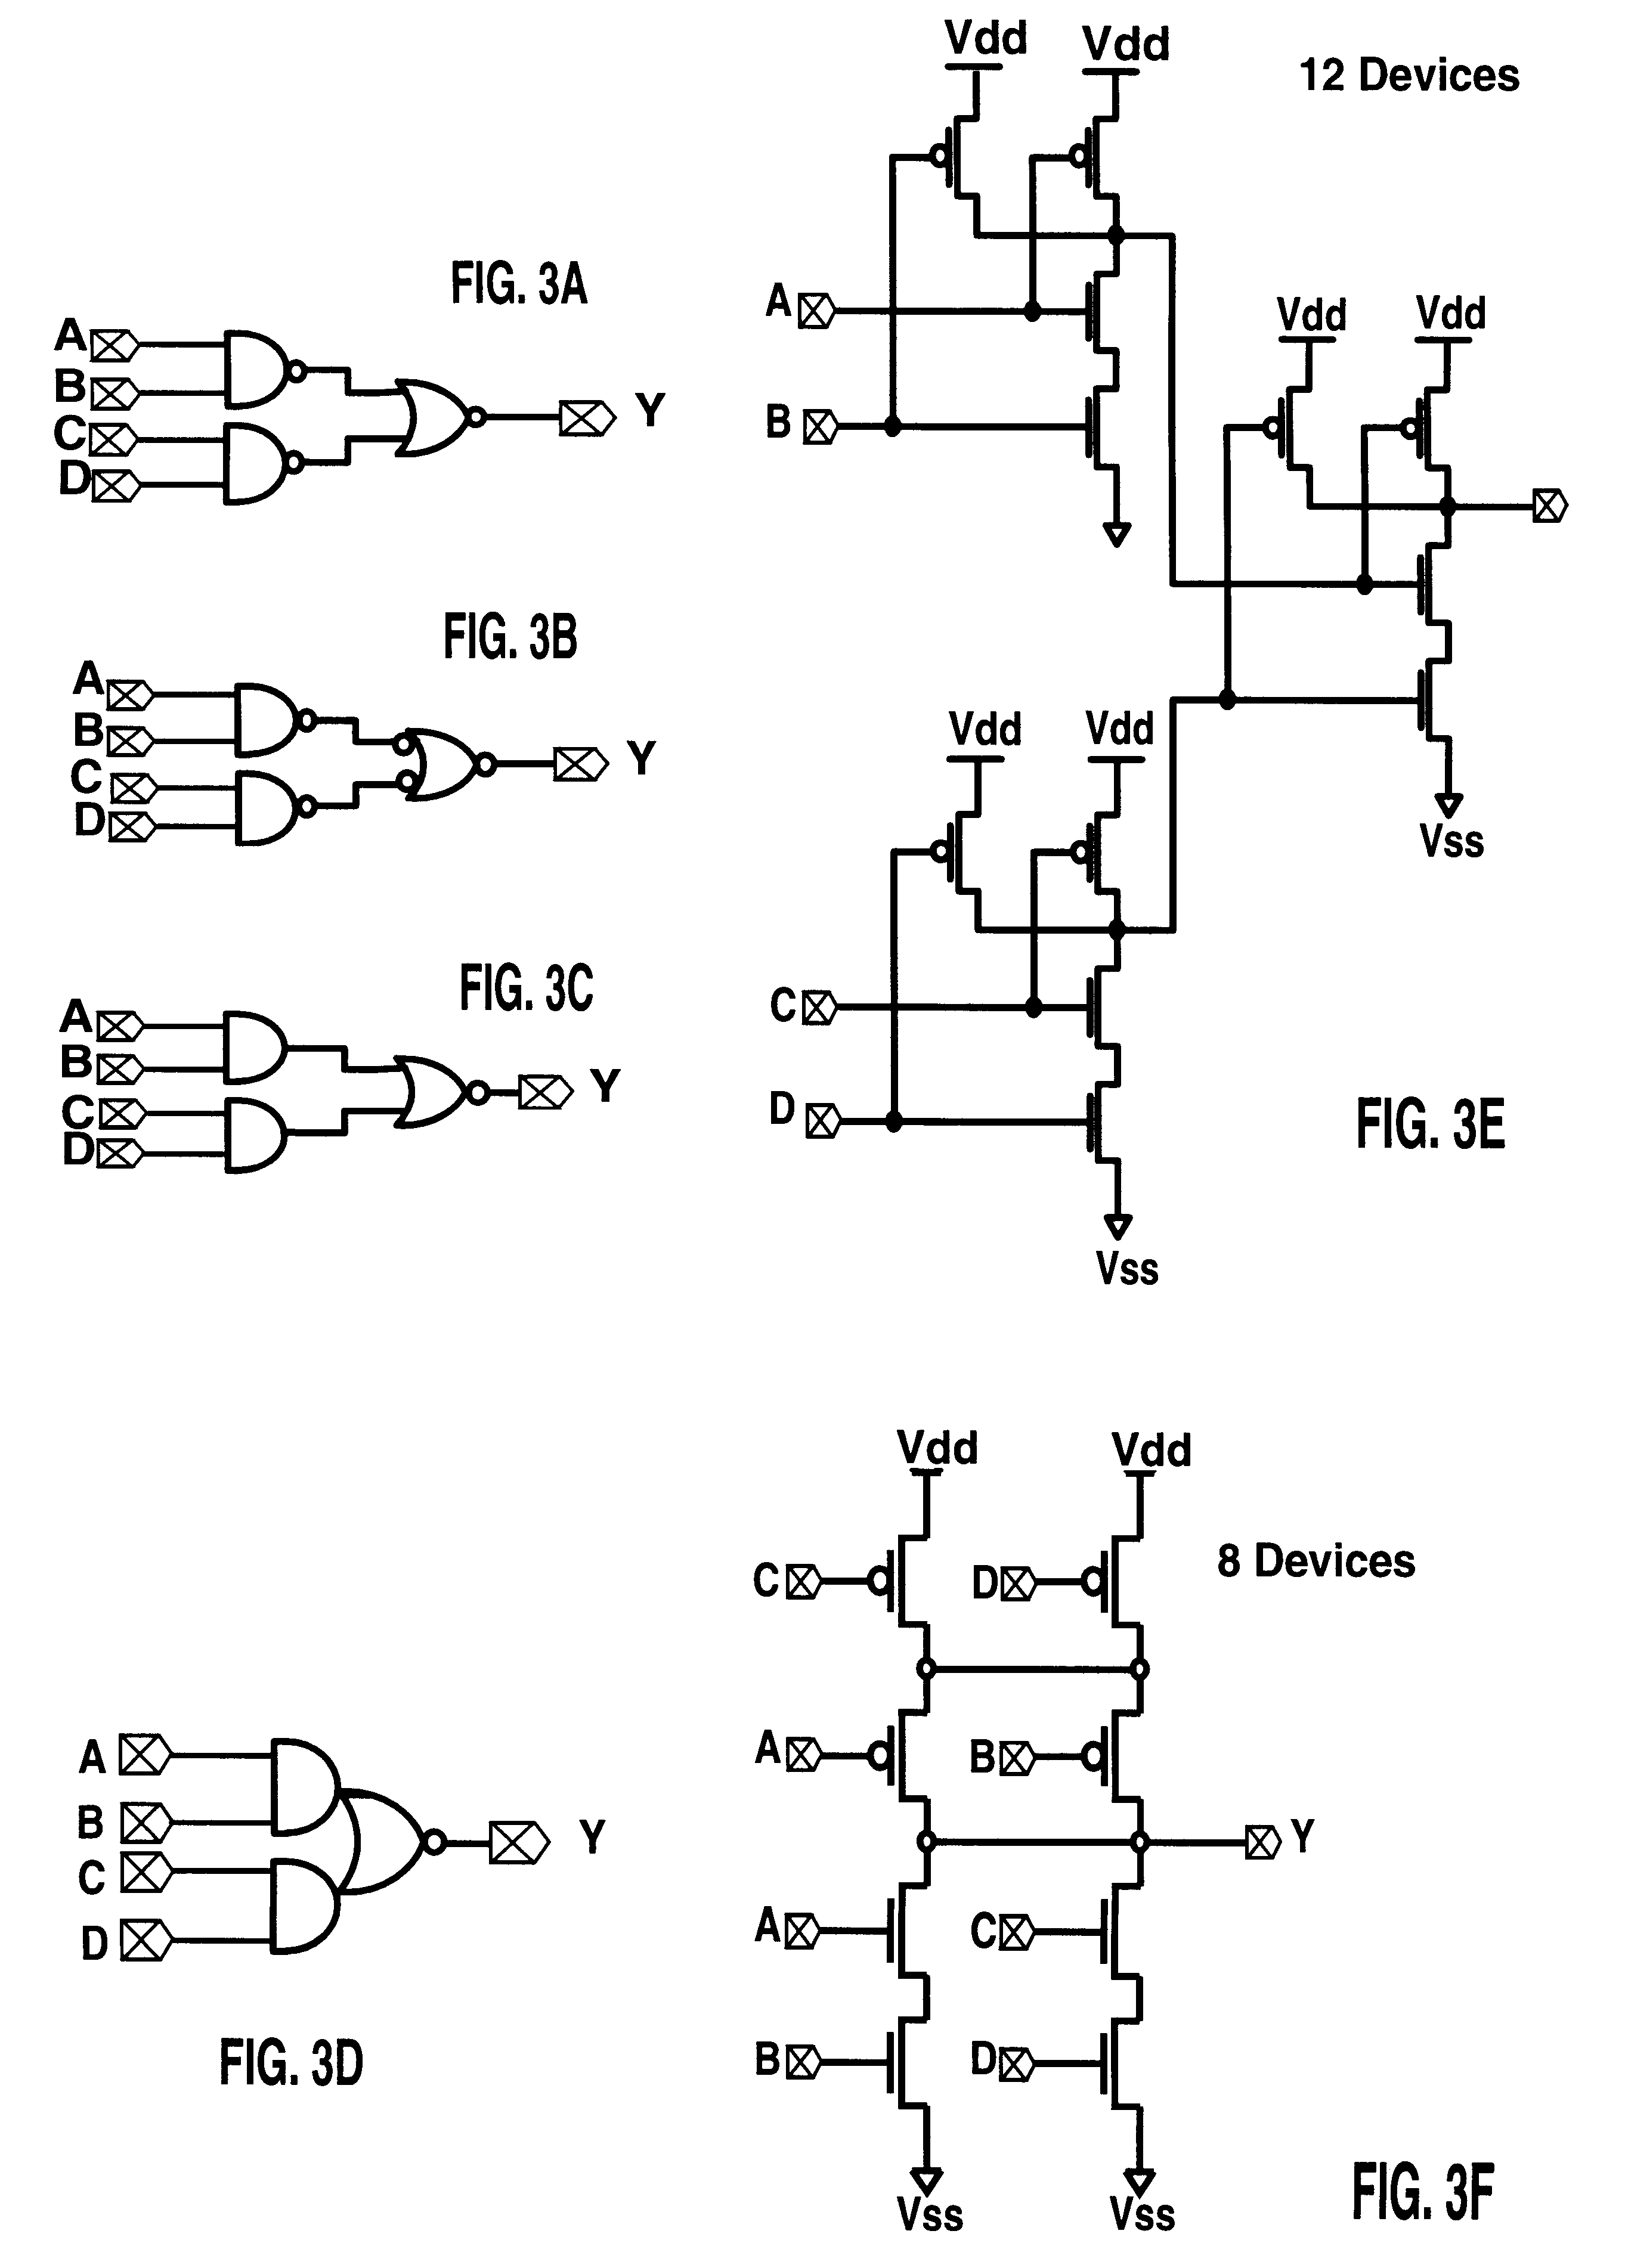 Component Flip Flop Logic Gates Digital Turn Latch Patent J K Circuit Diagram